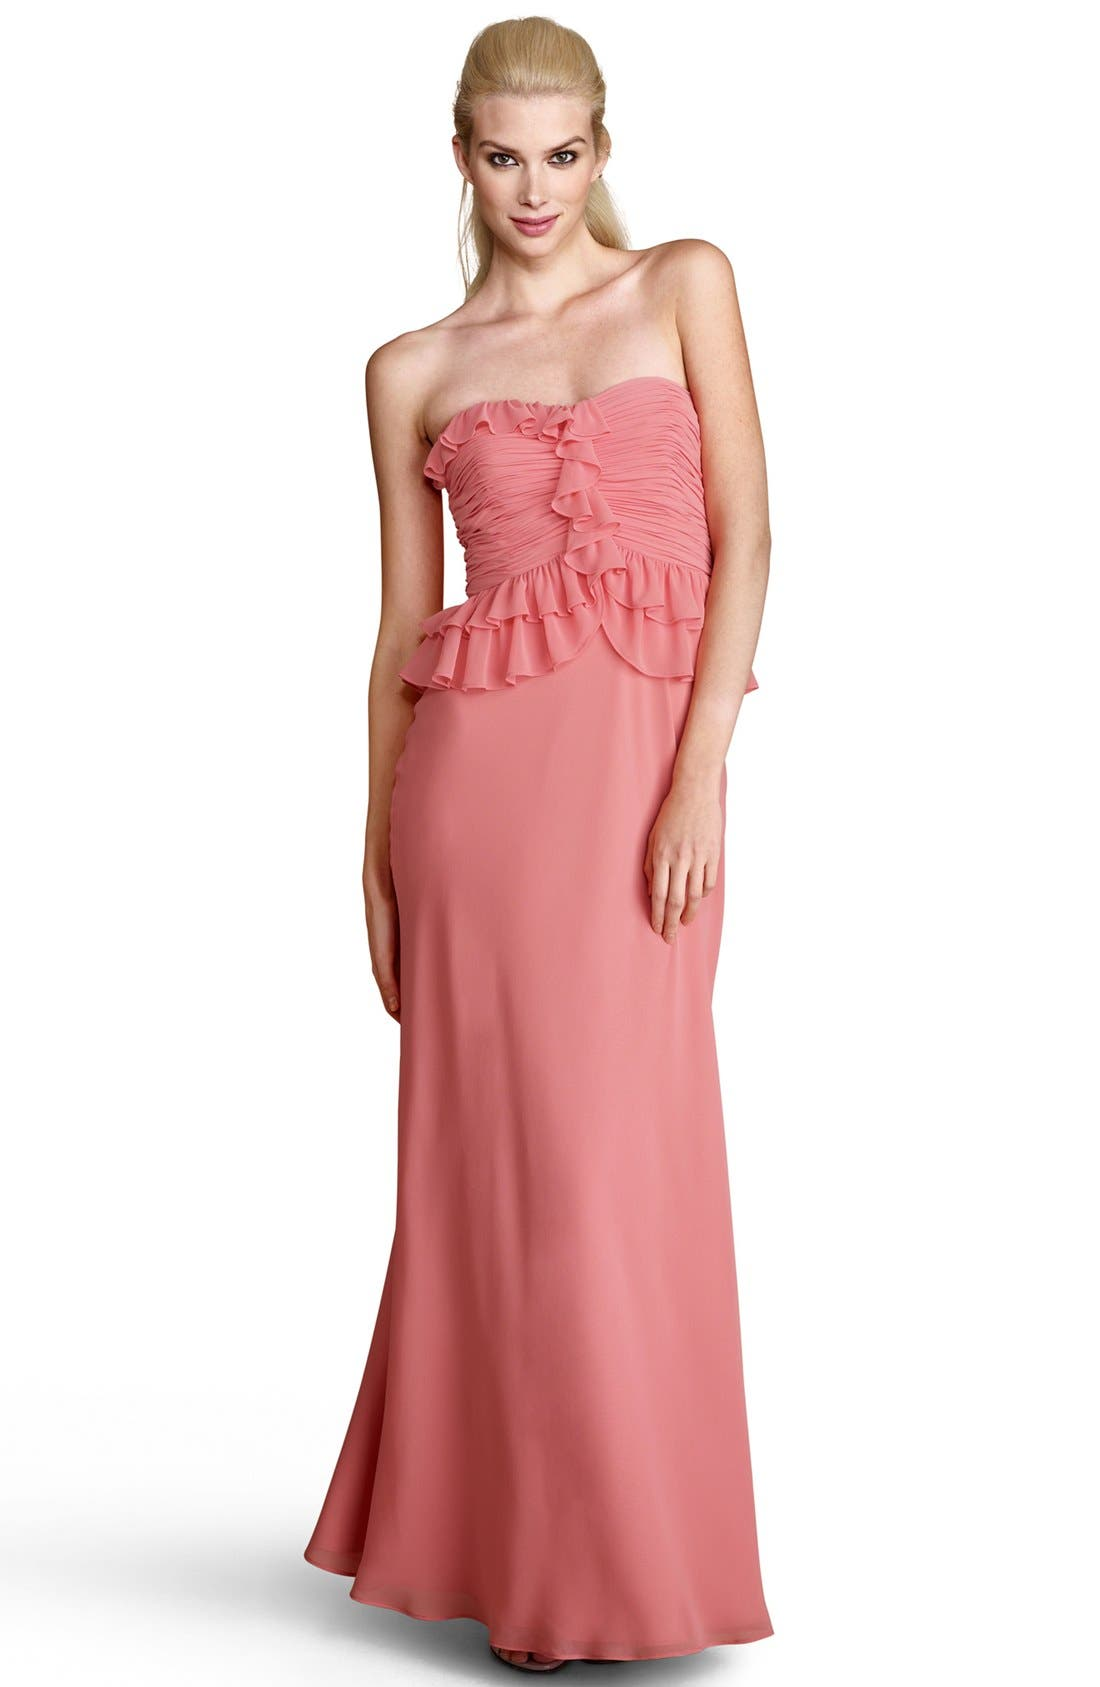 Alternate Image 1 Selected - Donna Morgan Ruffled Peplum Chiffon Gown